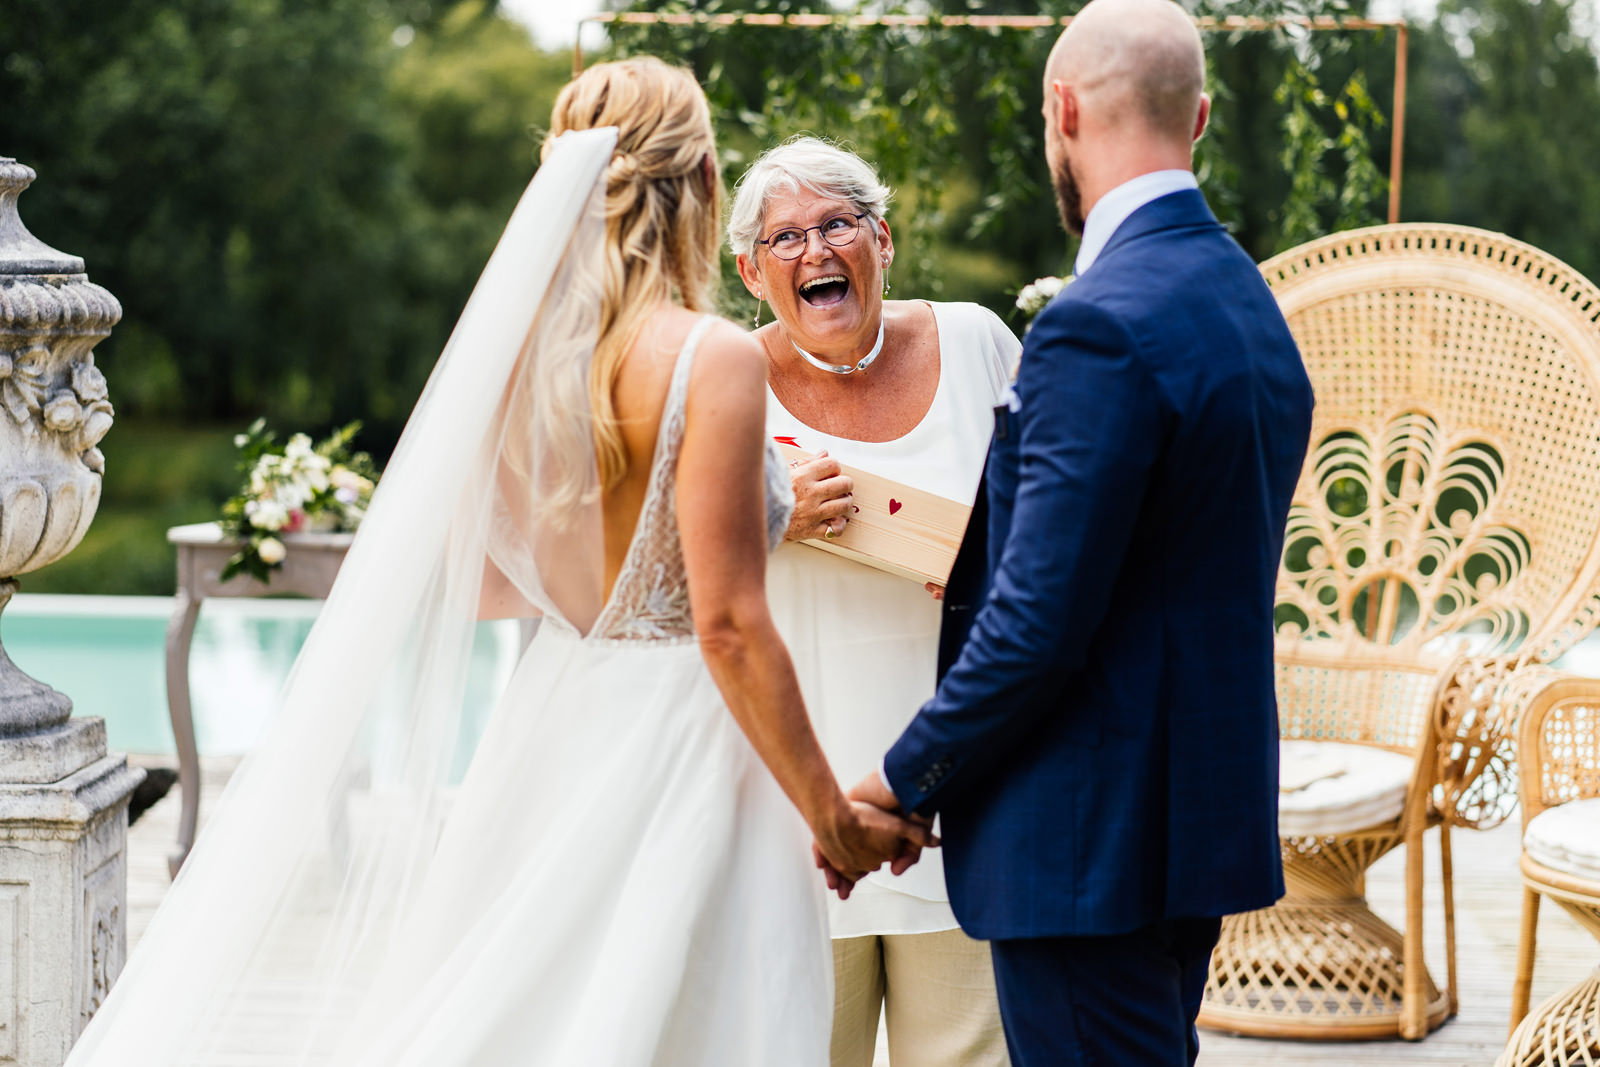 celebrant gives bride and groom a gift